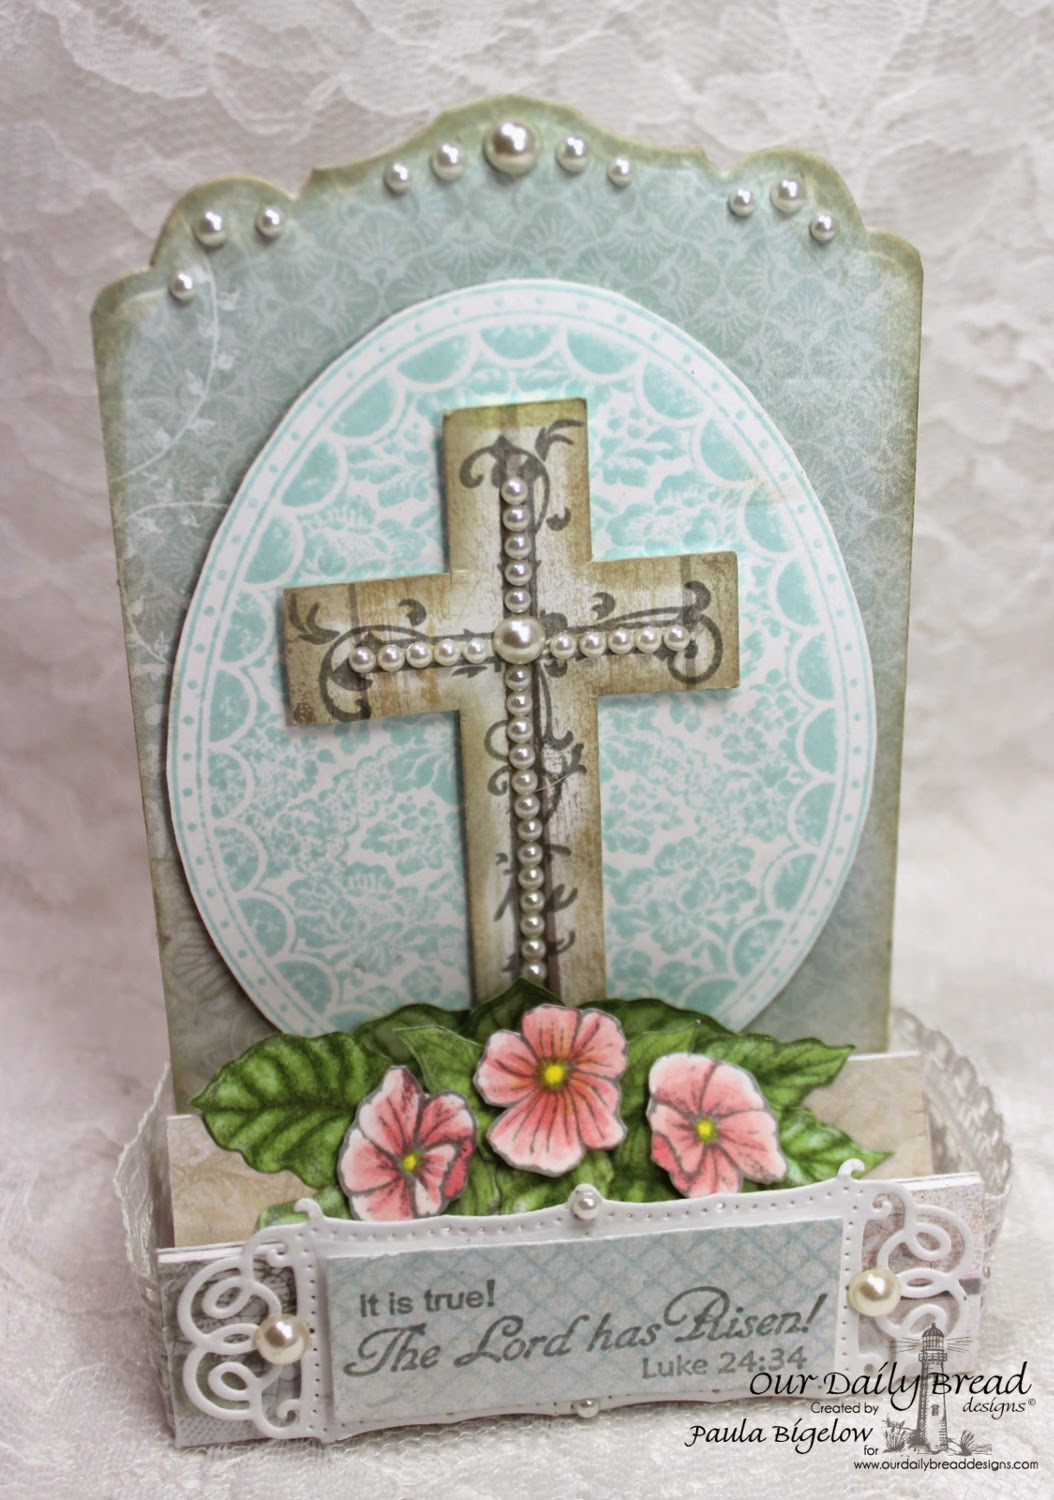 Our Daily Bread Designs, Floral Egg, The Lord is Risen, Cross with Vines, Antique Labels & Borders Dies, Vintage Flourish Pattern Dies, Recipe & Tags Dies, Shabby Rose Paper Collection. Designer Paula Bigelow